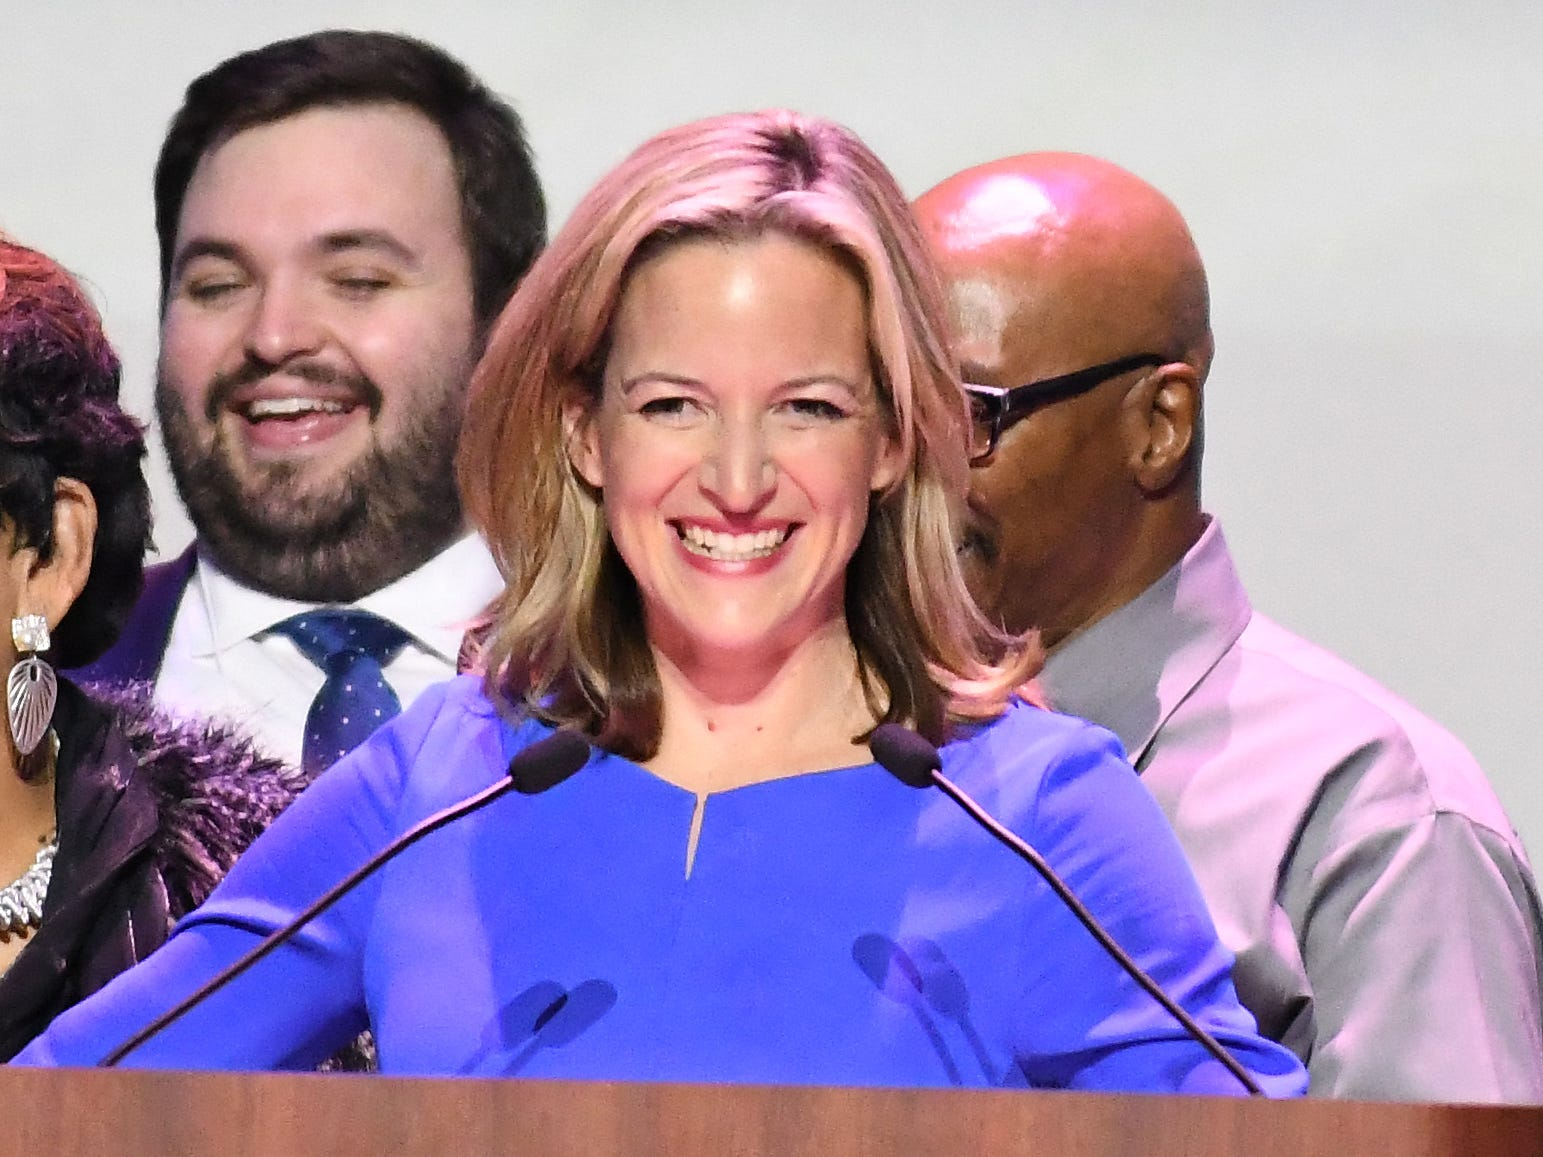 A Senate Republican power play proposal to shift campaign oversight from Democratic Secretary of State-elect Jocelyn Benson to a new political commission is poised to die in the Michigan House.